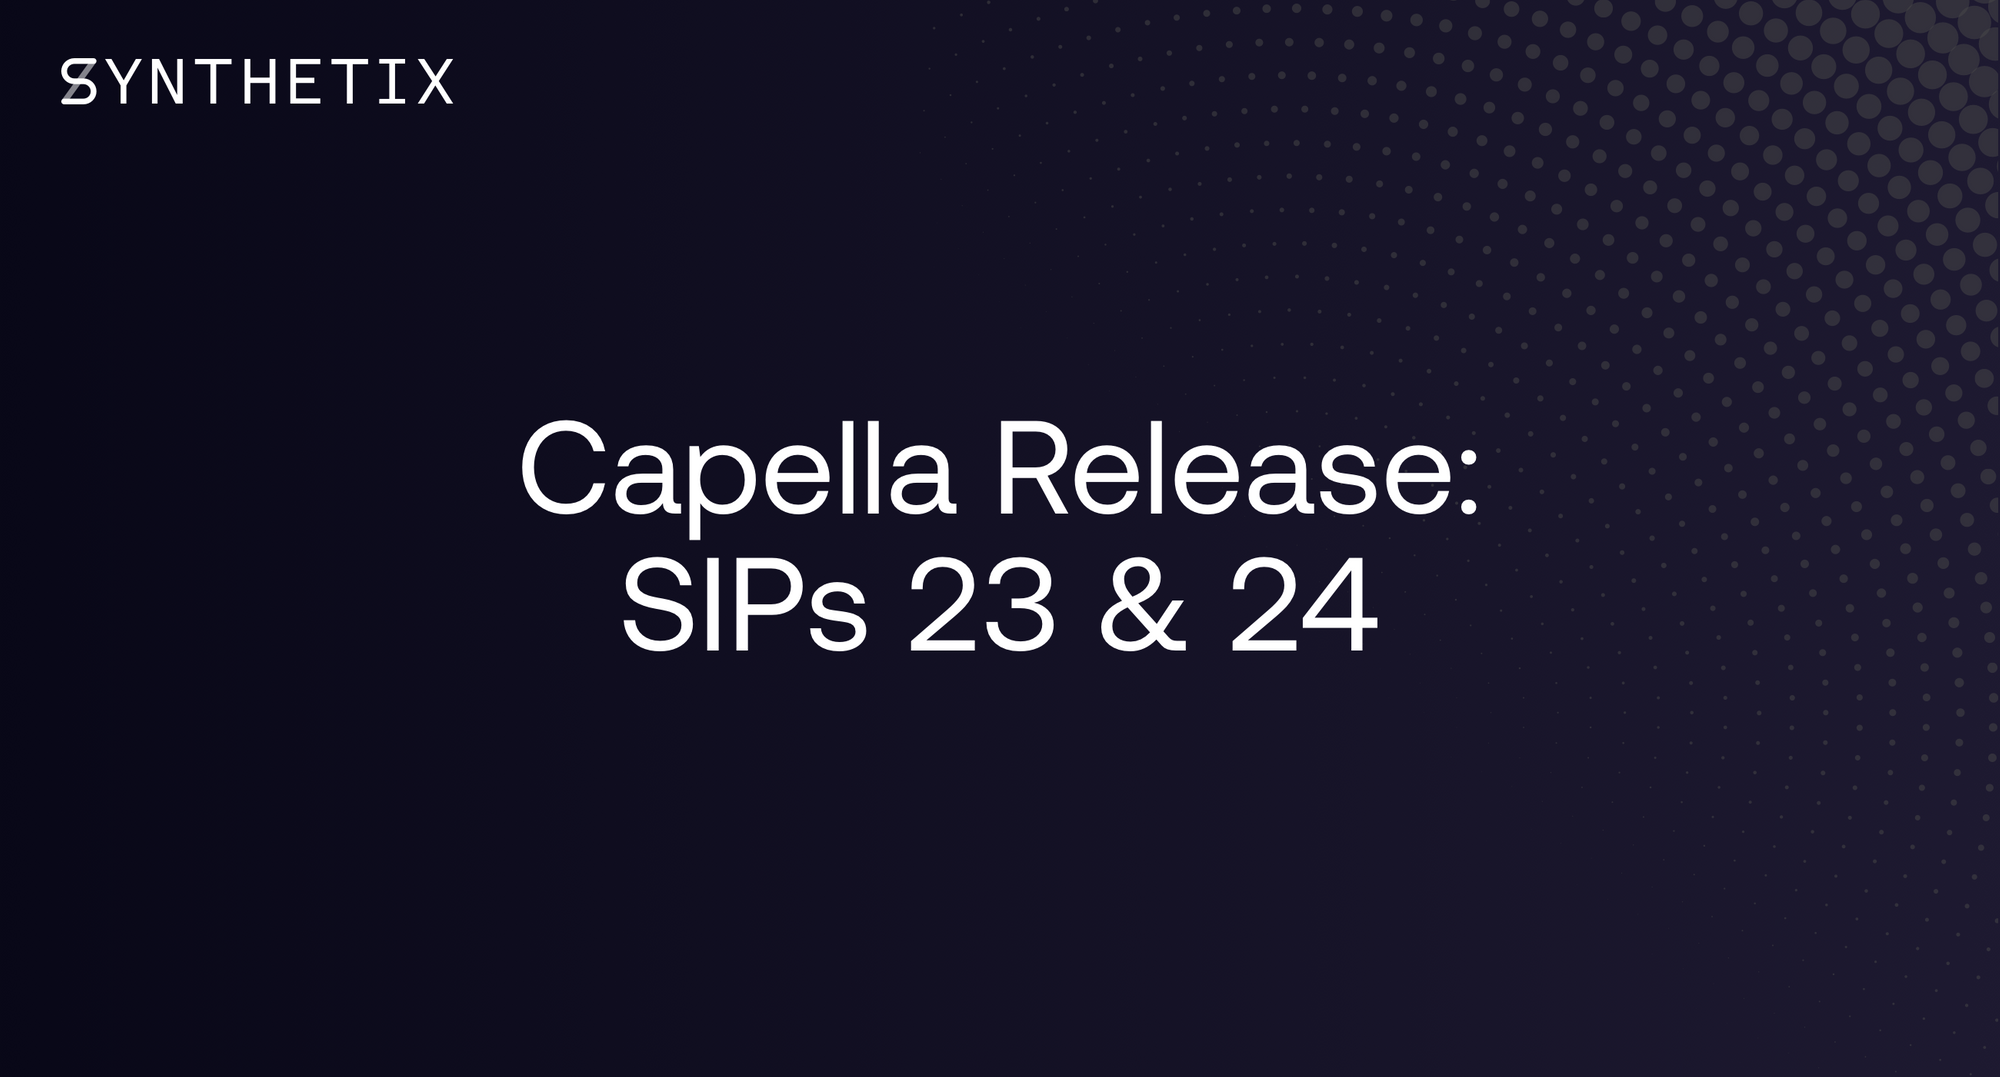 The Capella Release